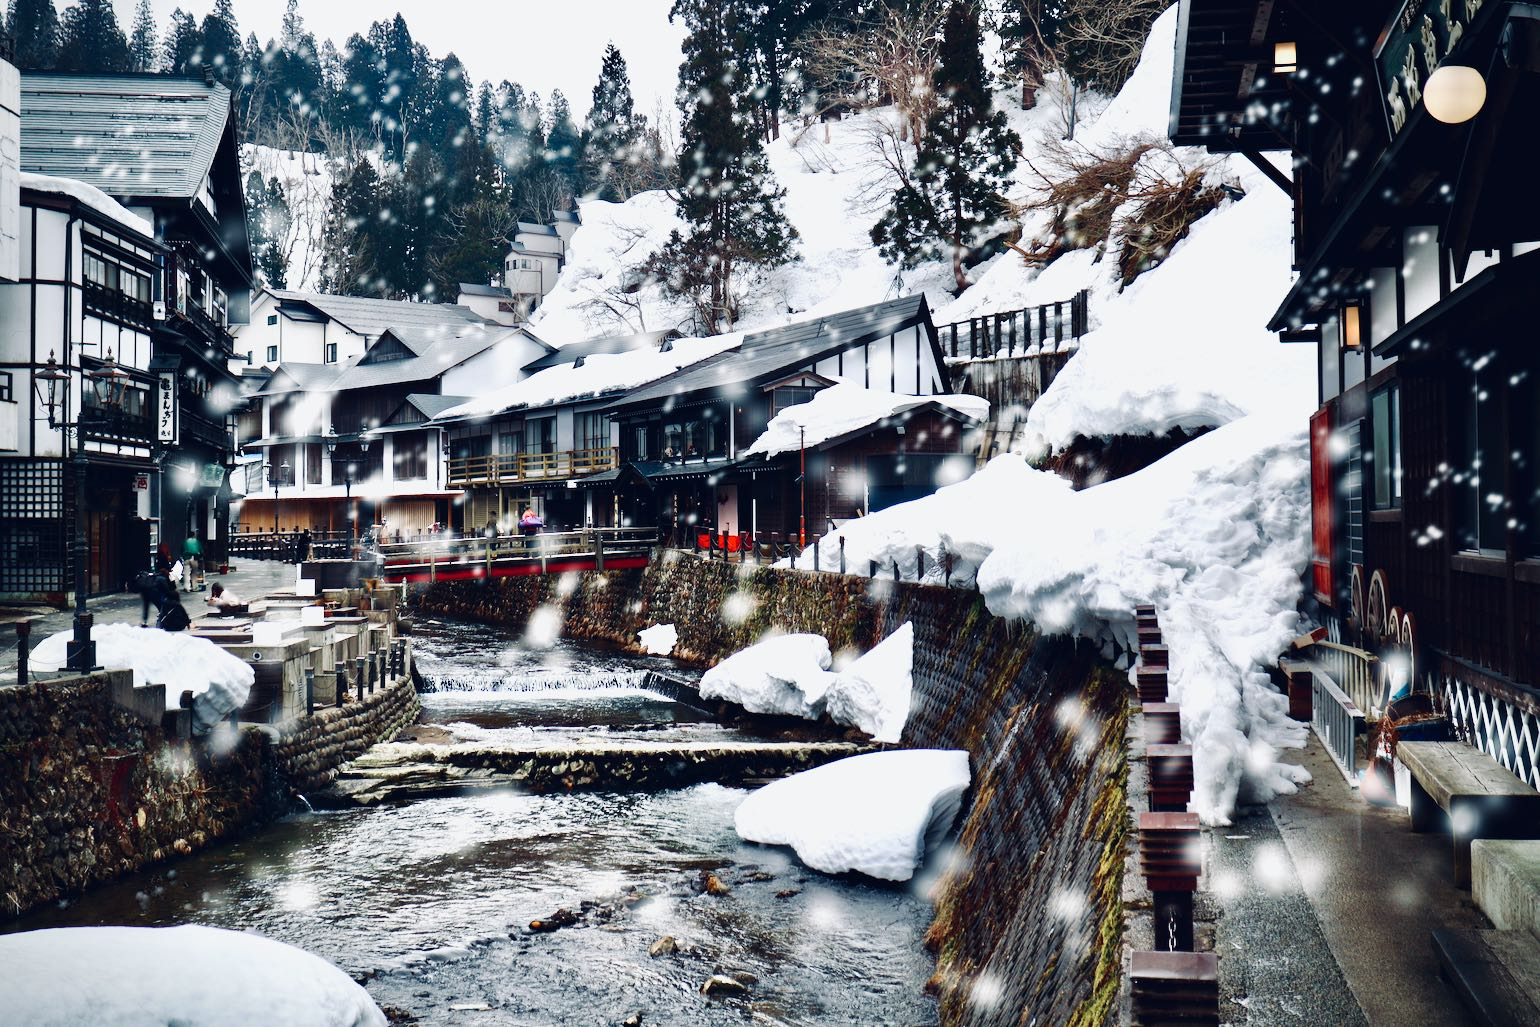 Ginzan Onsen - Winter with light snowfall